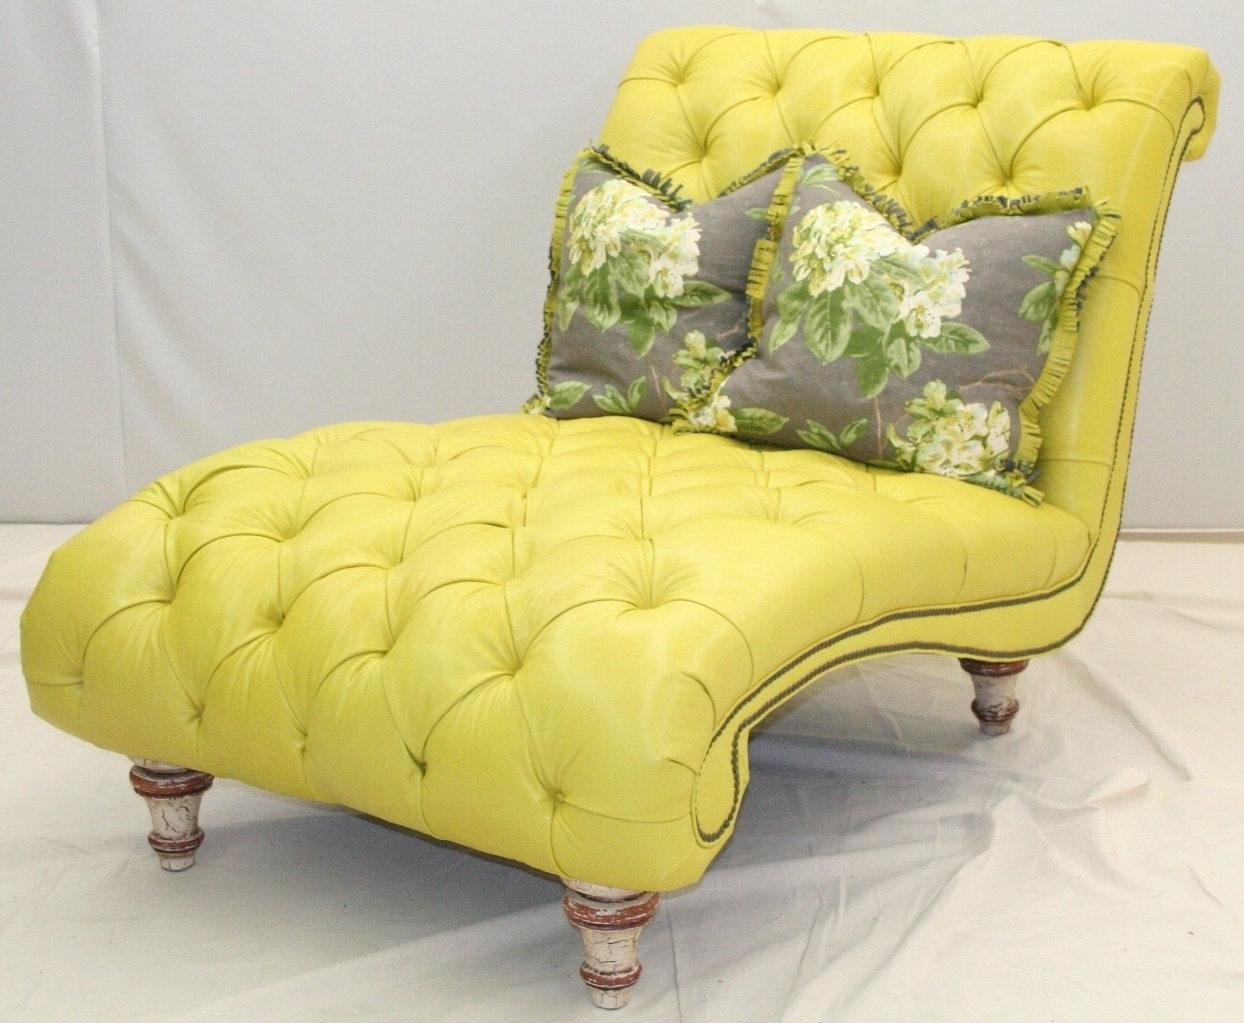 Tufted Chaises Regarding Fashionable Flytufted Yellow Chaise (View 11 of 15)